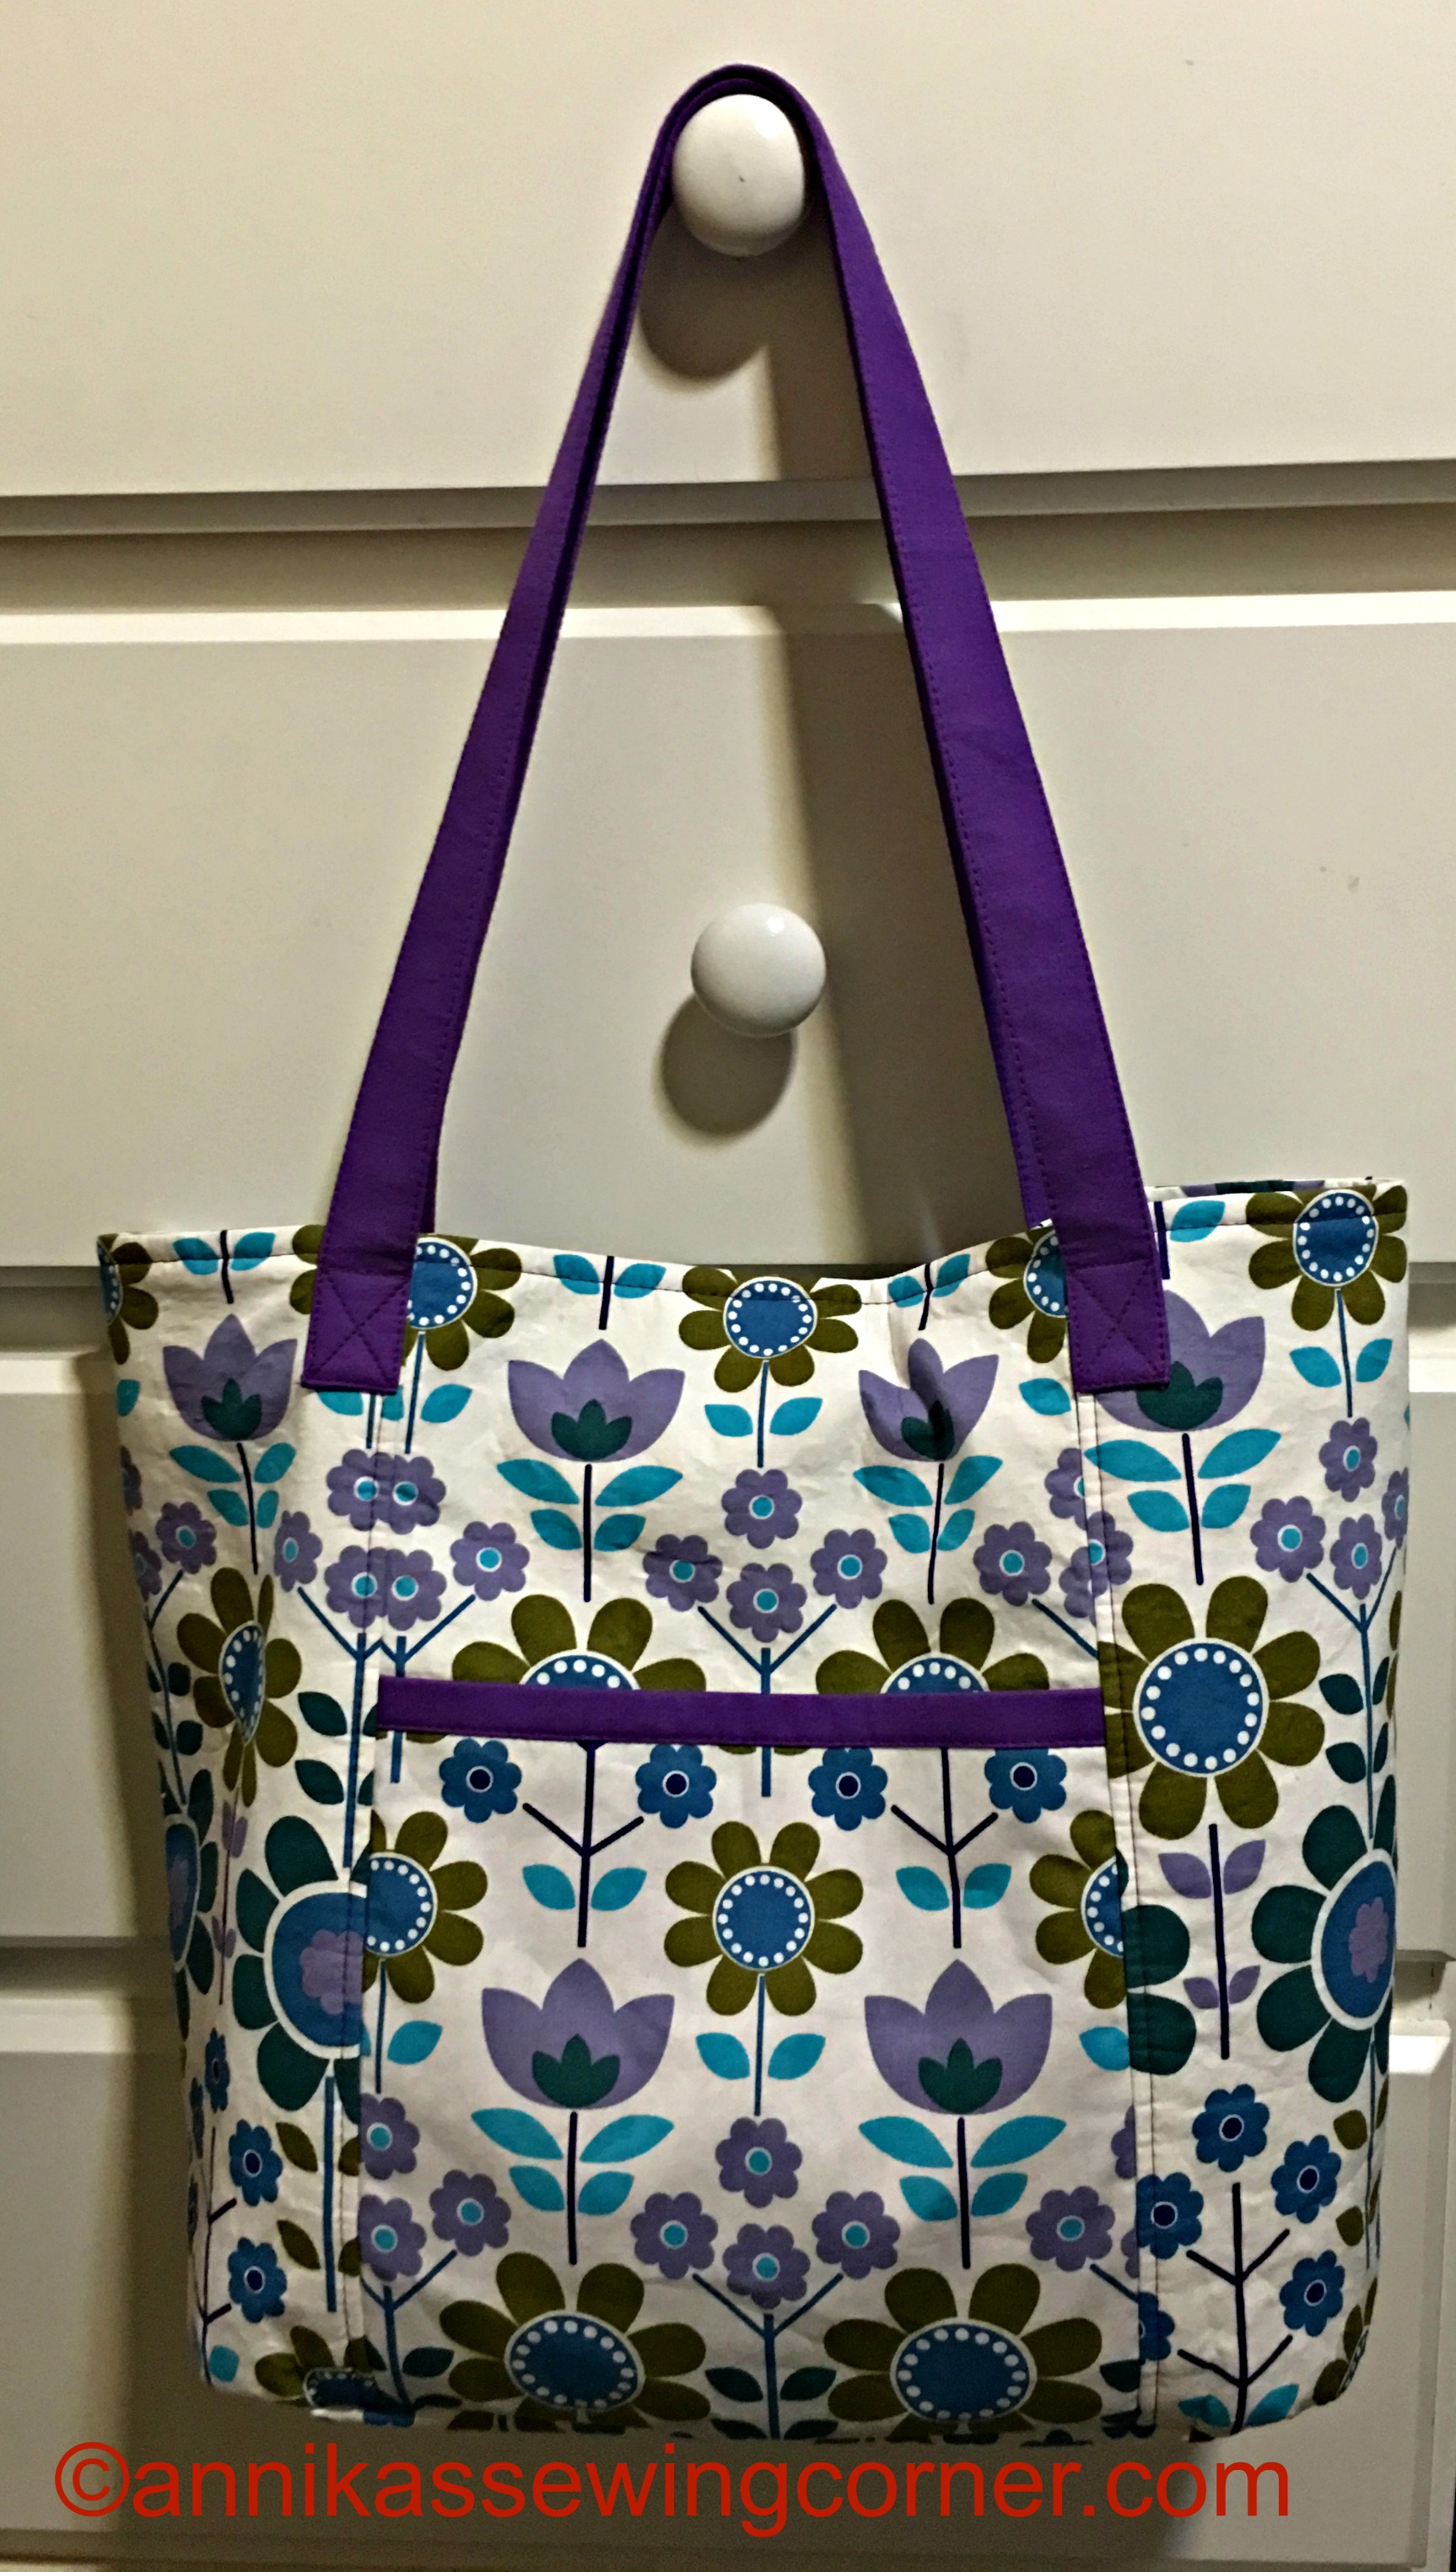 A new Shopping Tote Bag Pattern in my Etsy Shop - Annika's